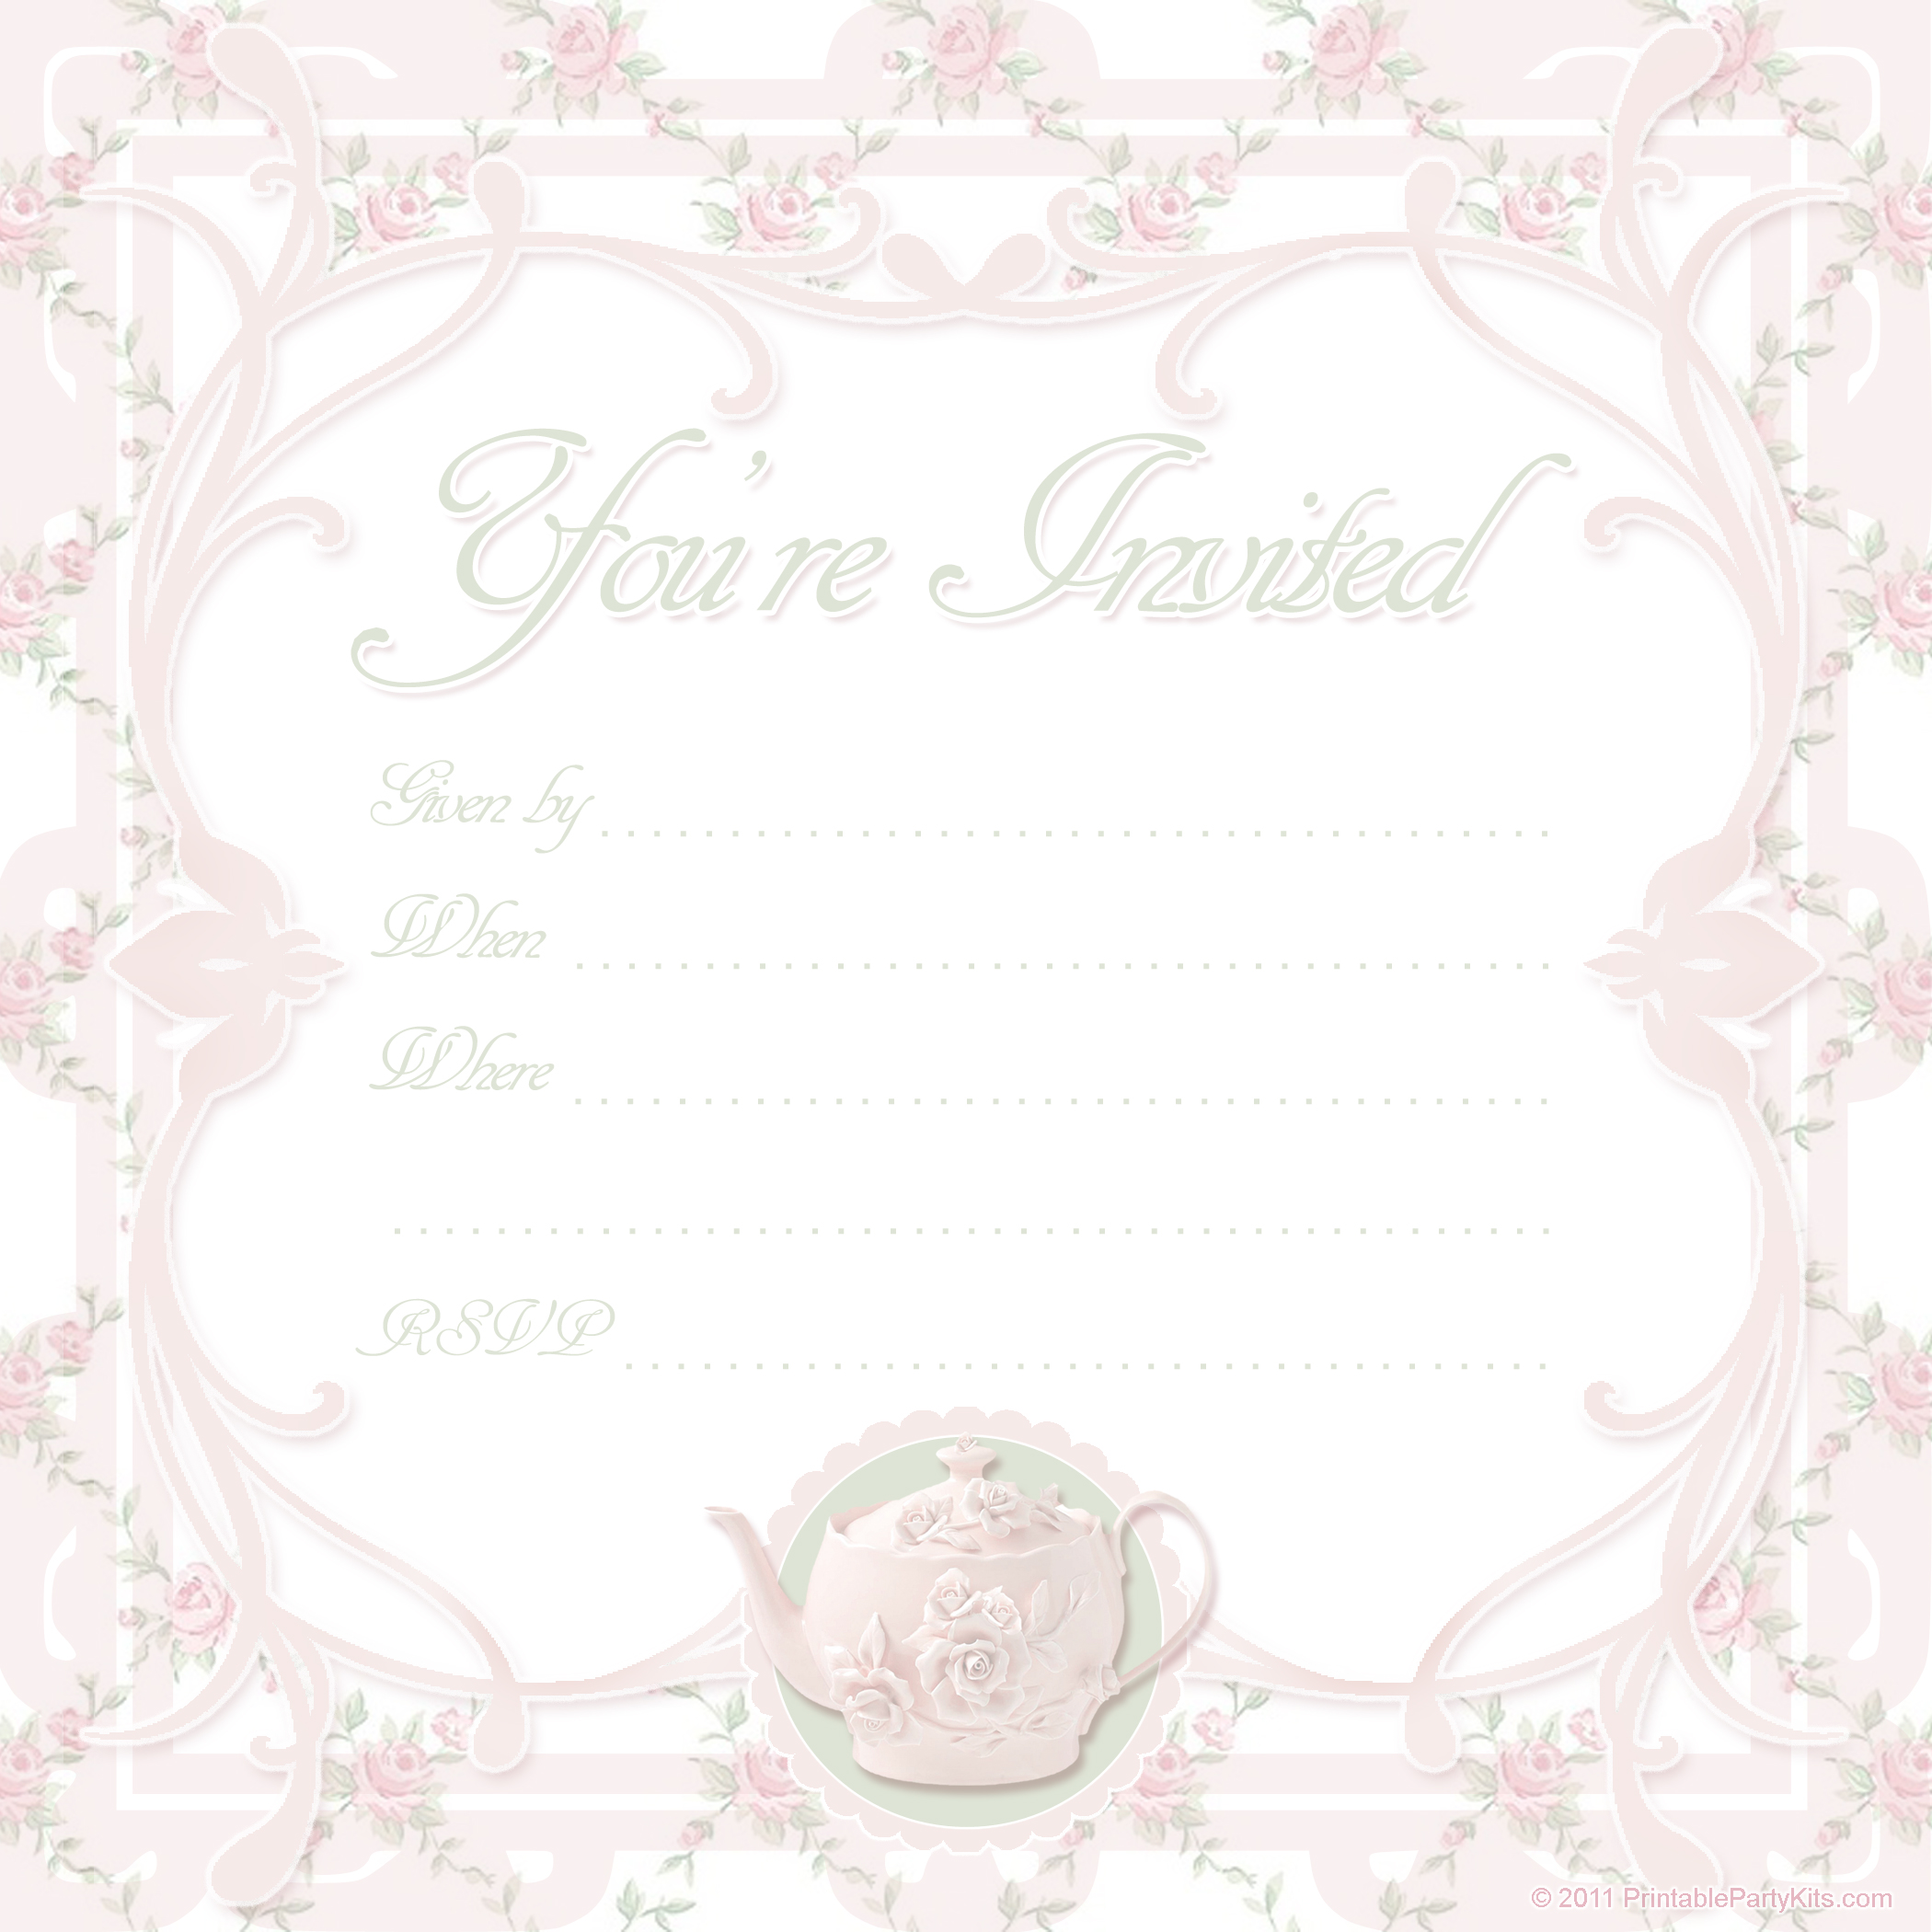 Click On The Free Printable Tea Party Invite Template Below To Enlarge